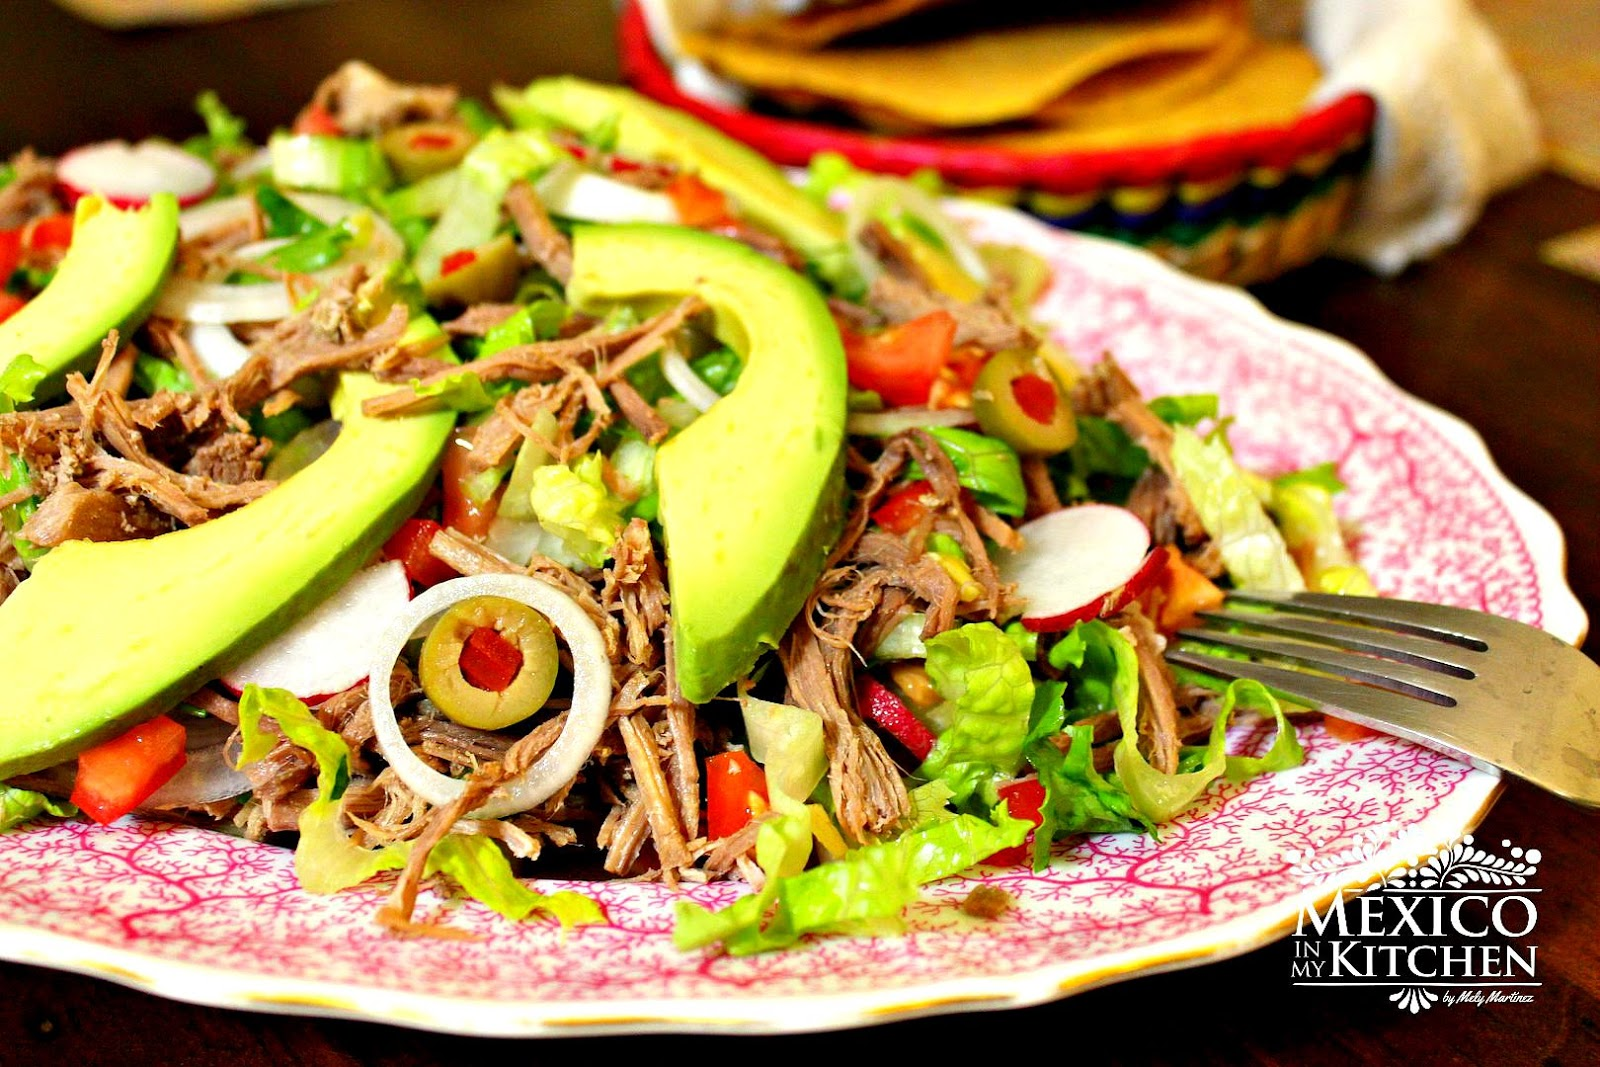 Mexico in My Kitchen: Salpicon, Shredded Beef Mexican Salad |Authentic ...